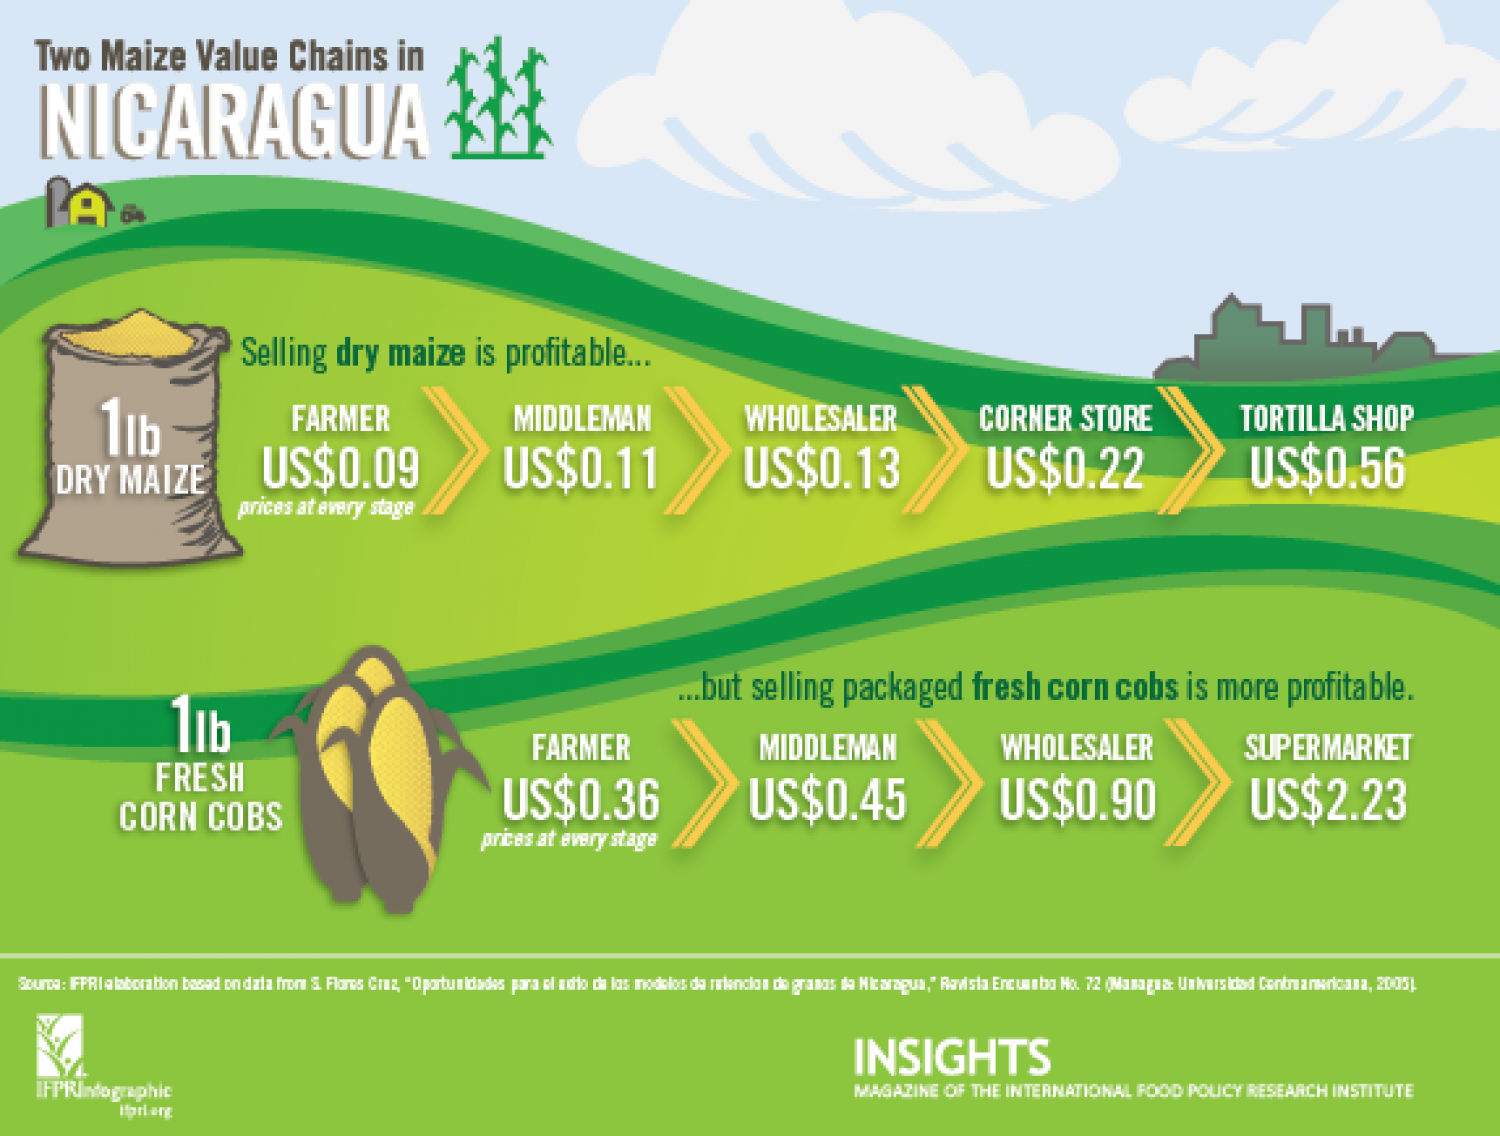 Two Maize Value Chains in Nicaragua Infographic